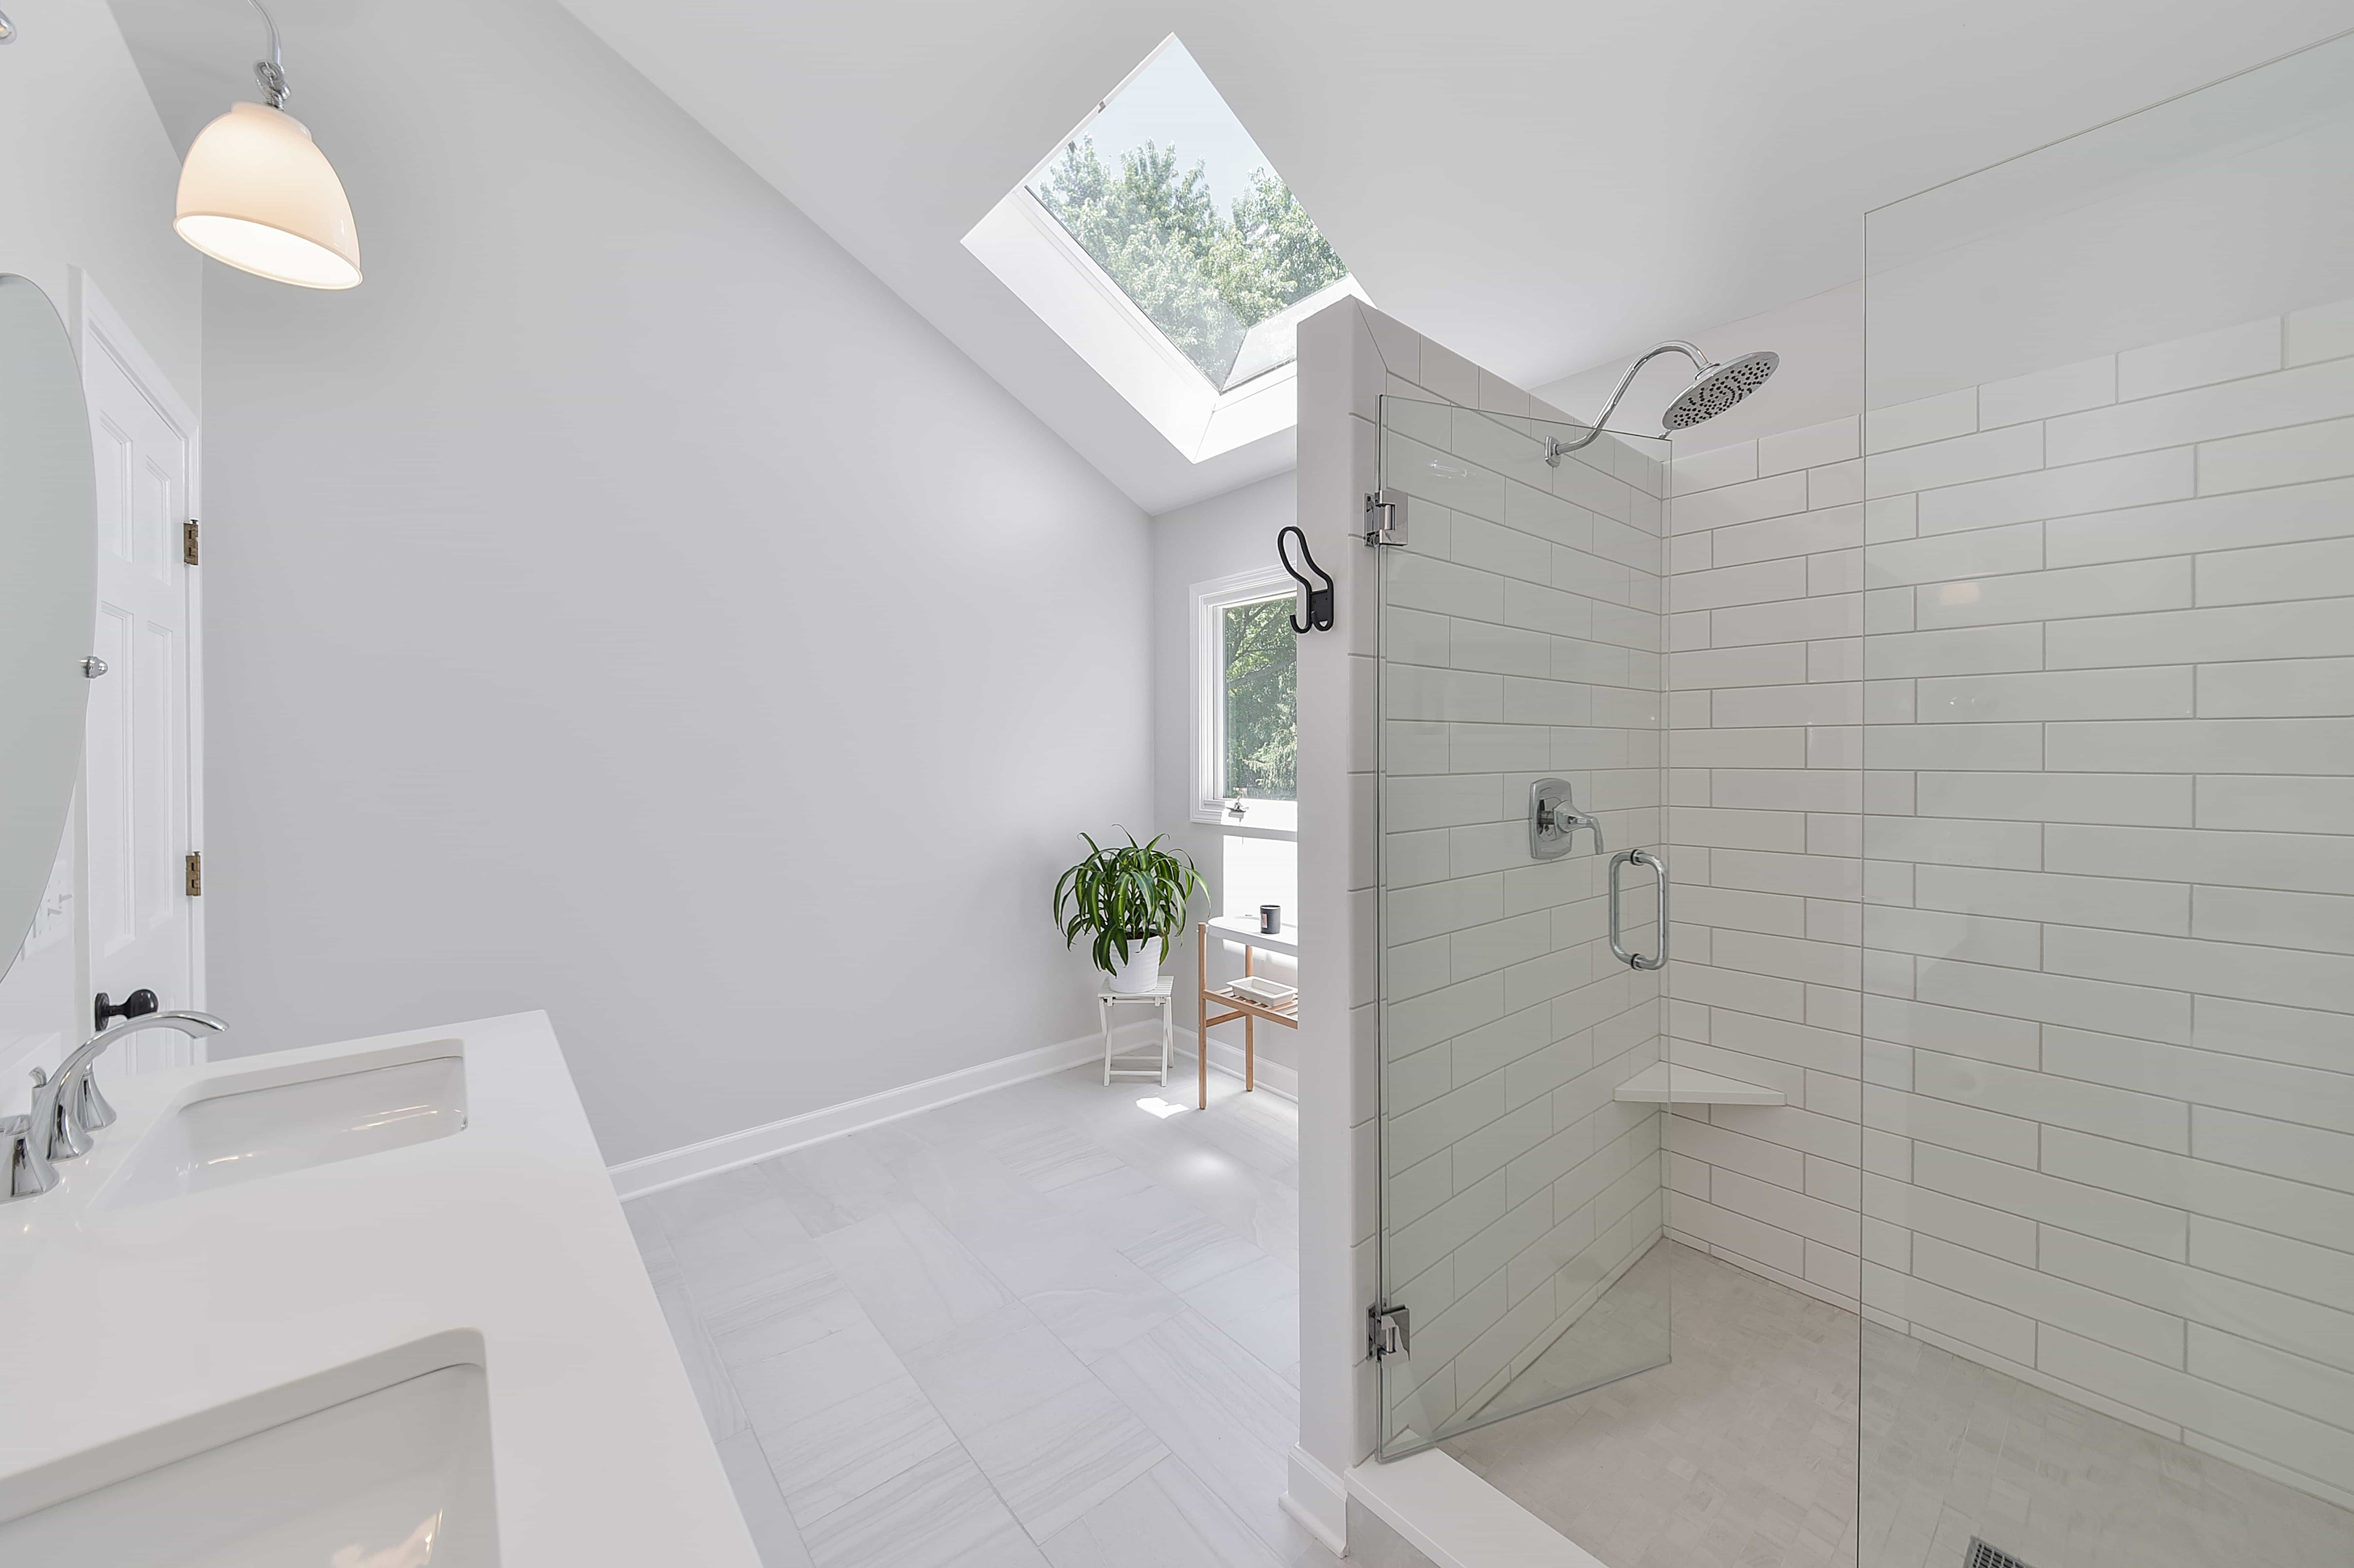 Monochromatic Contemporary Bathroom And Shower Combo With Glass Door Walk In Subway Tile Shower And Skylight (View 1 of 16)